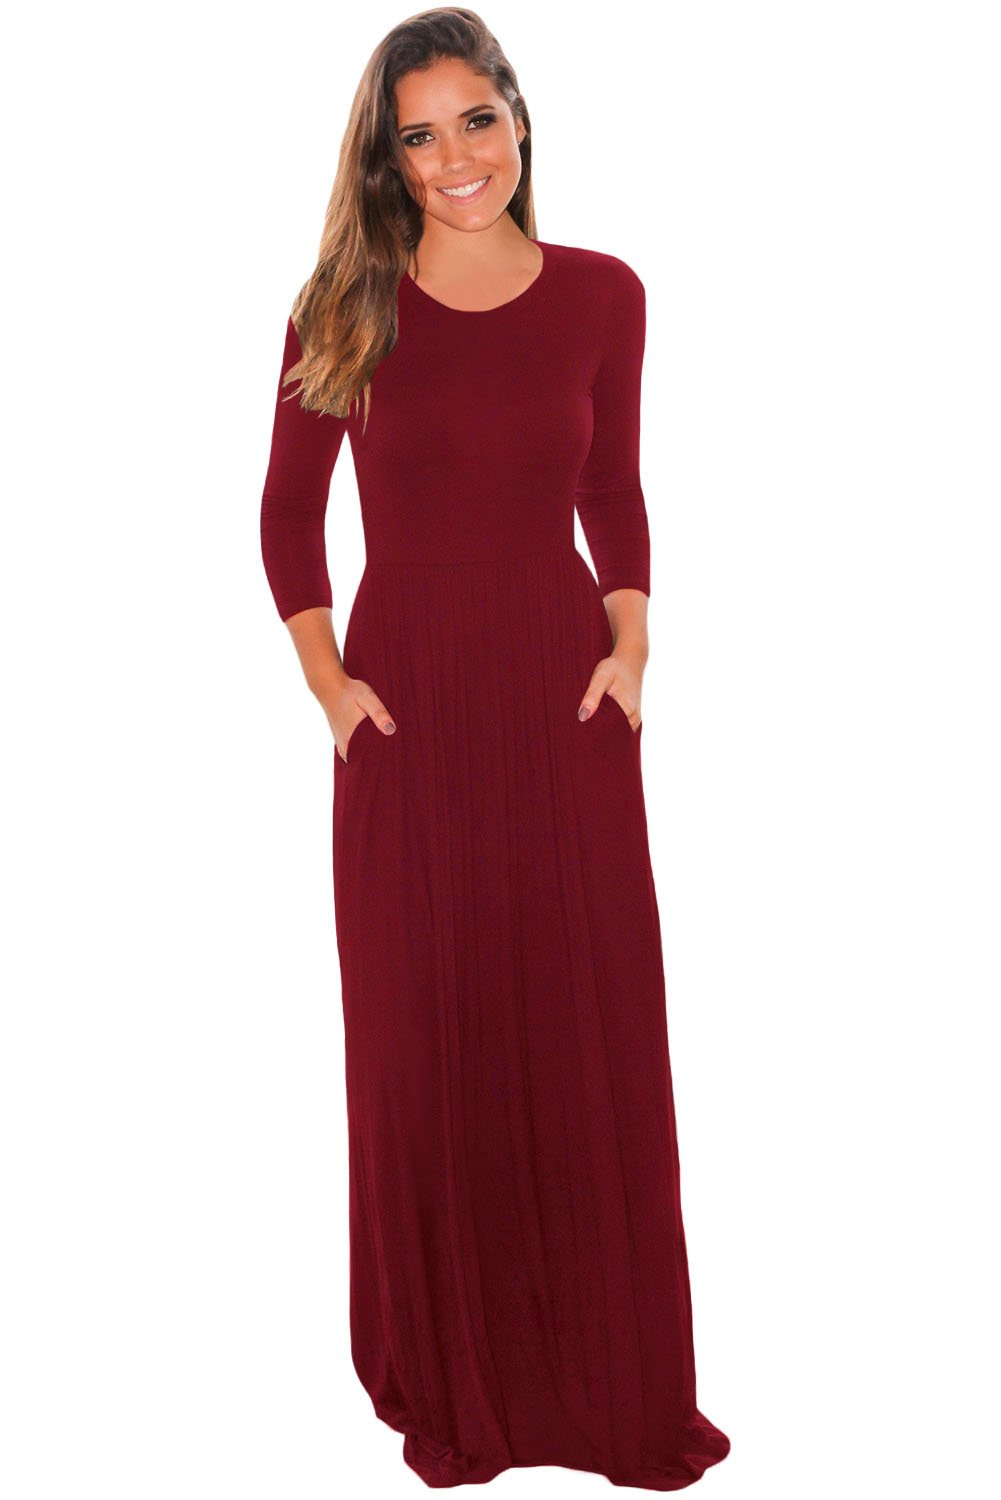 0c2ab8b112 Women Solid Burgundy Front Pocket 3 4 Long Sleeves Scoop Neck Maxi ...